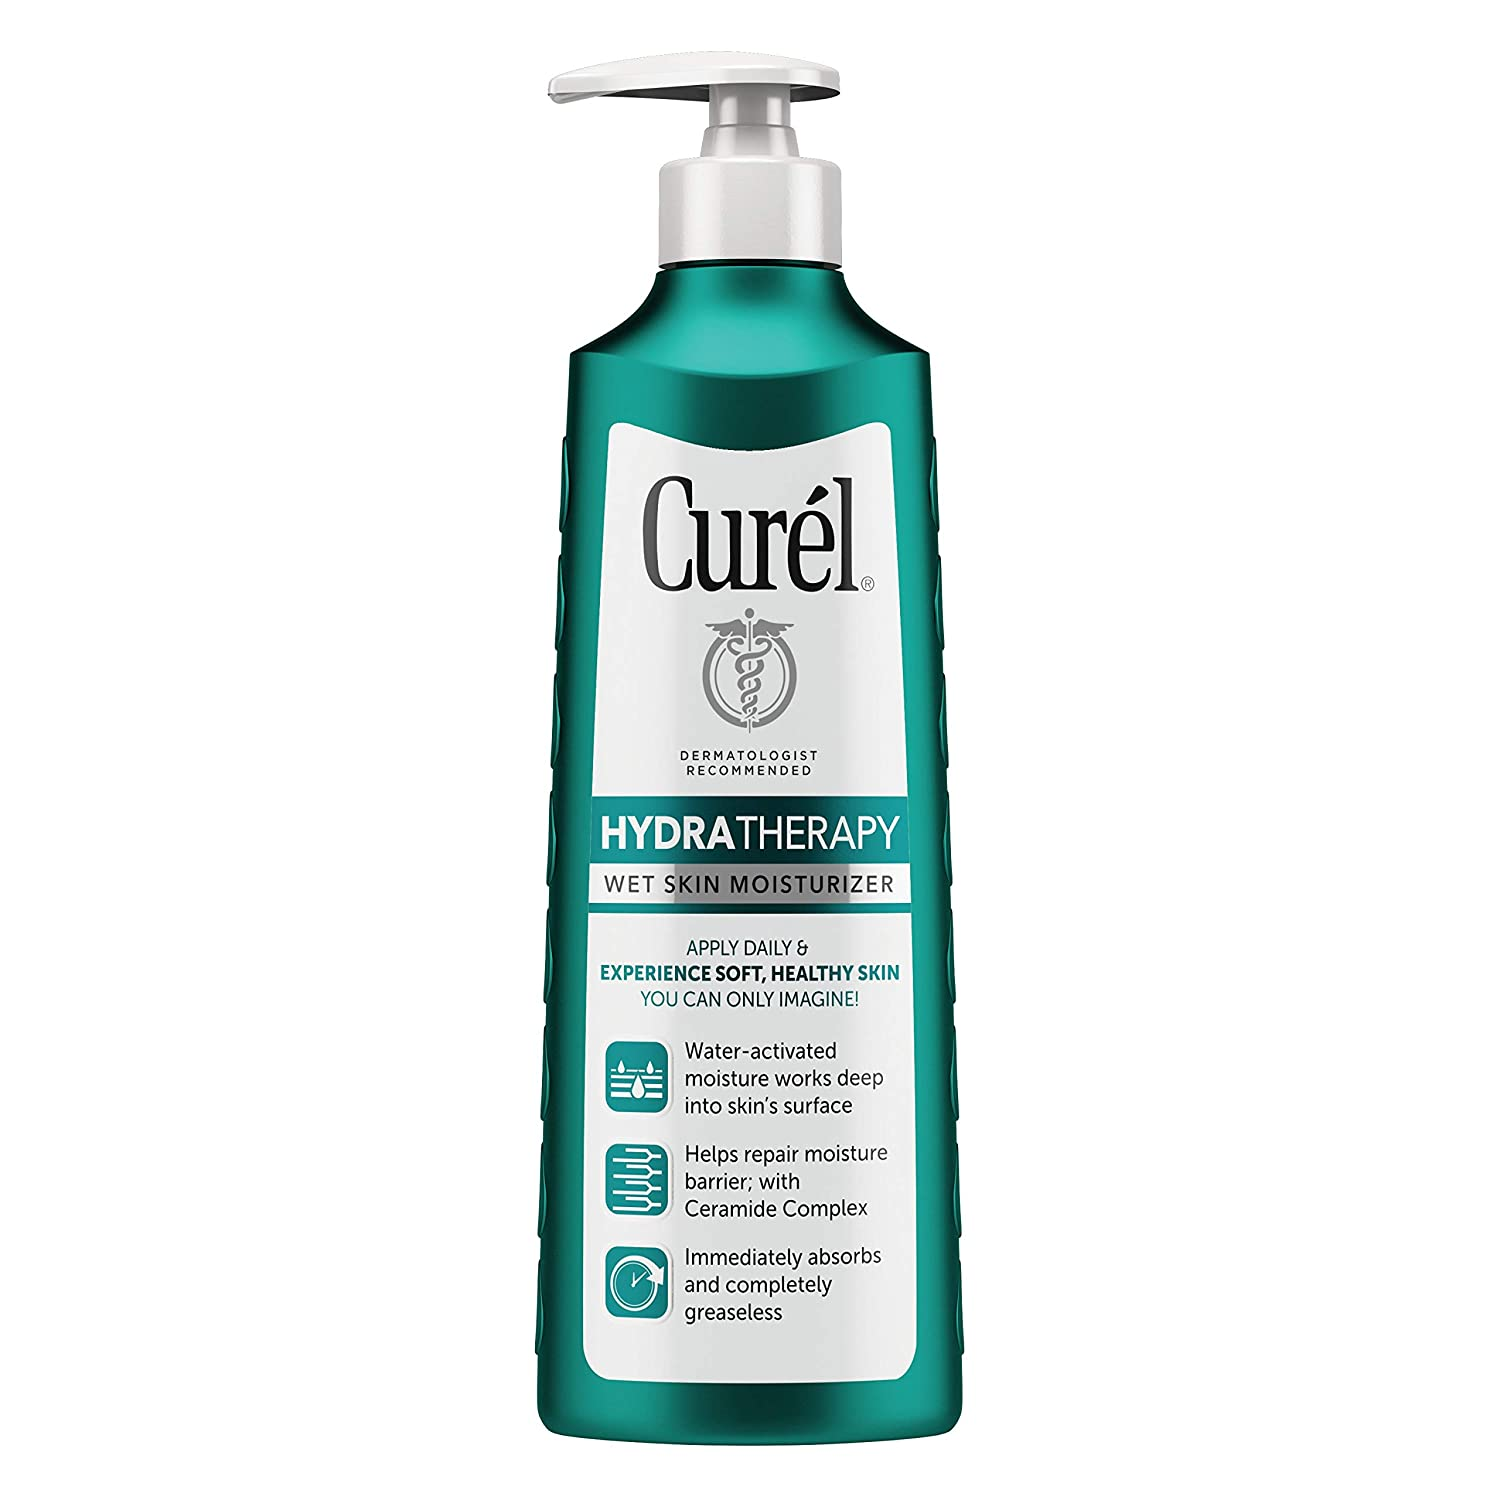 Curél Hydra Therapy Wet Skin Moisturizer for Dry & Extra-Dry Skin, 12 Ounces KAO Brands LEPUSEMTE055